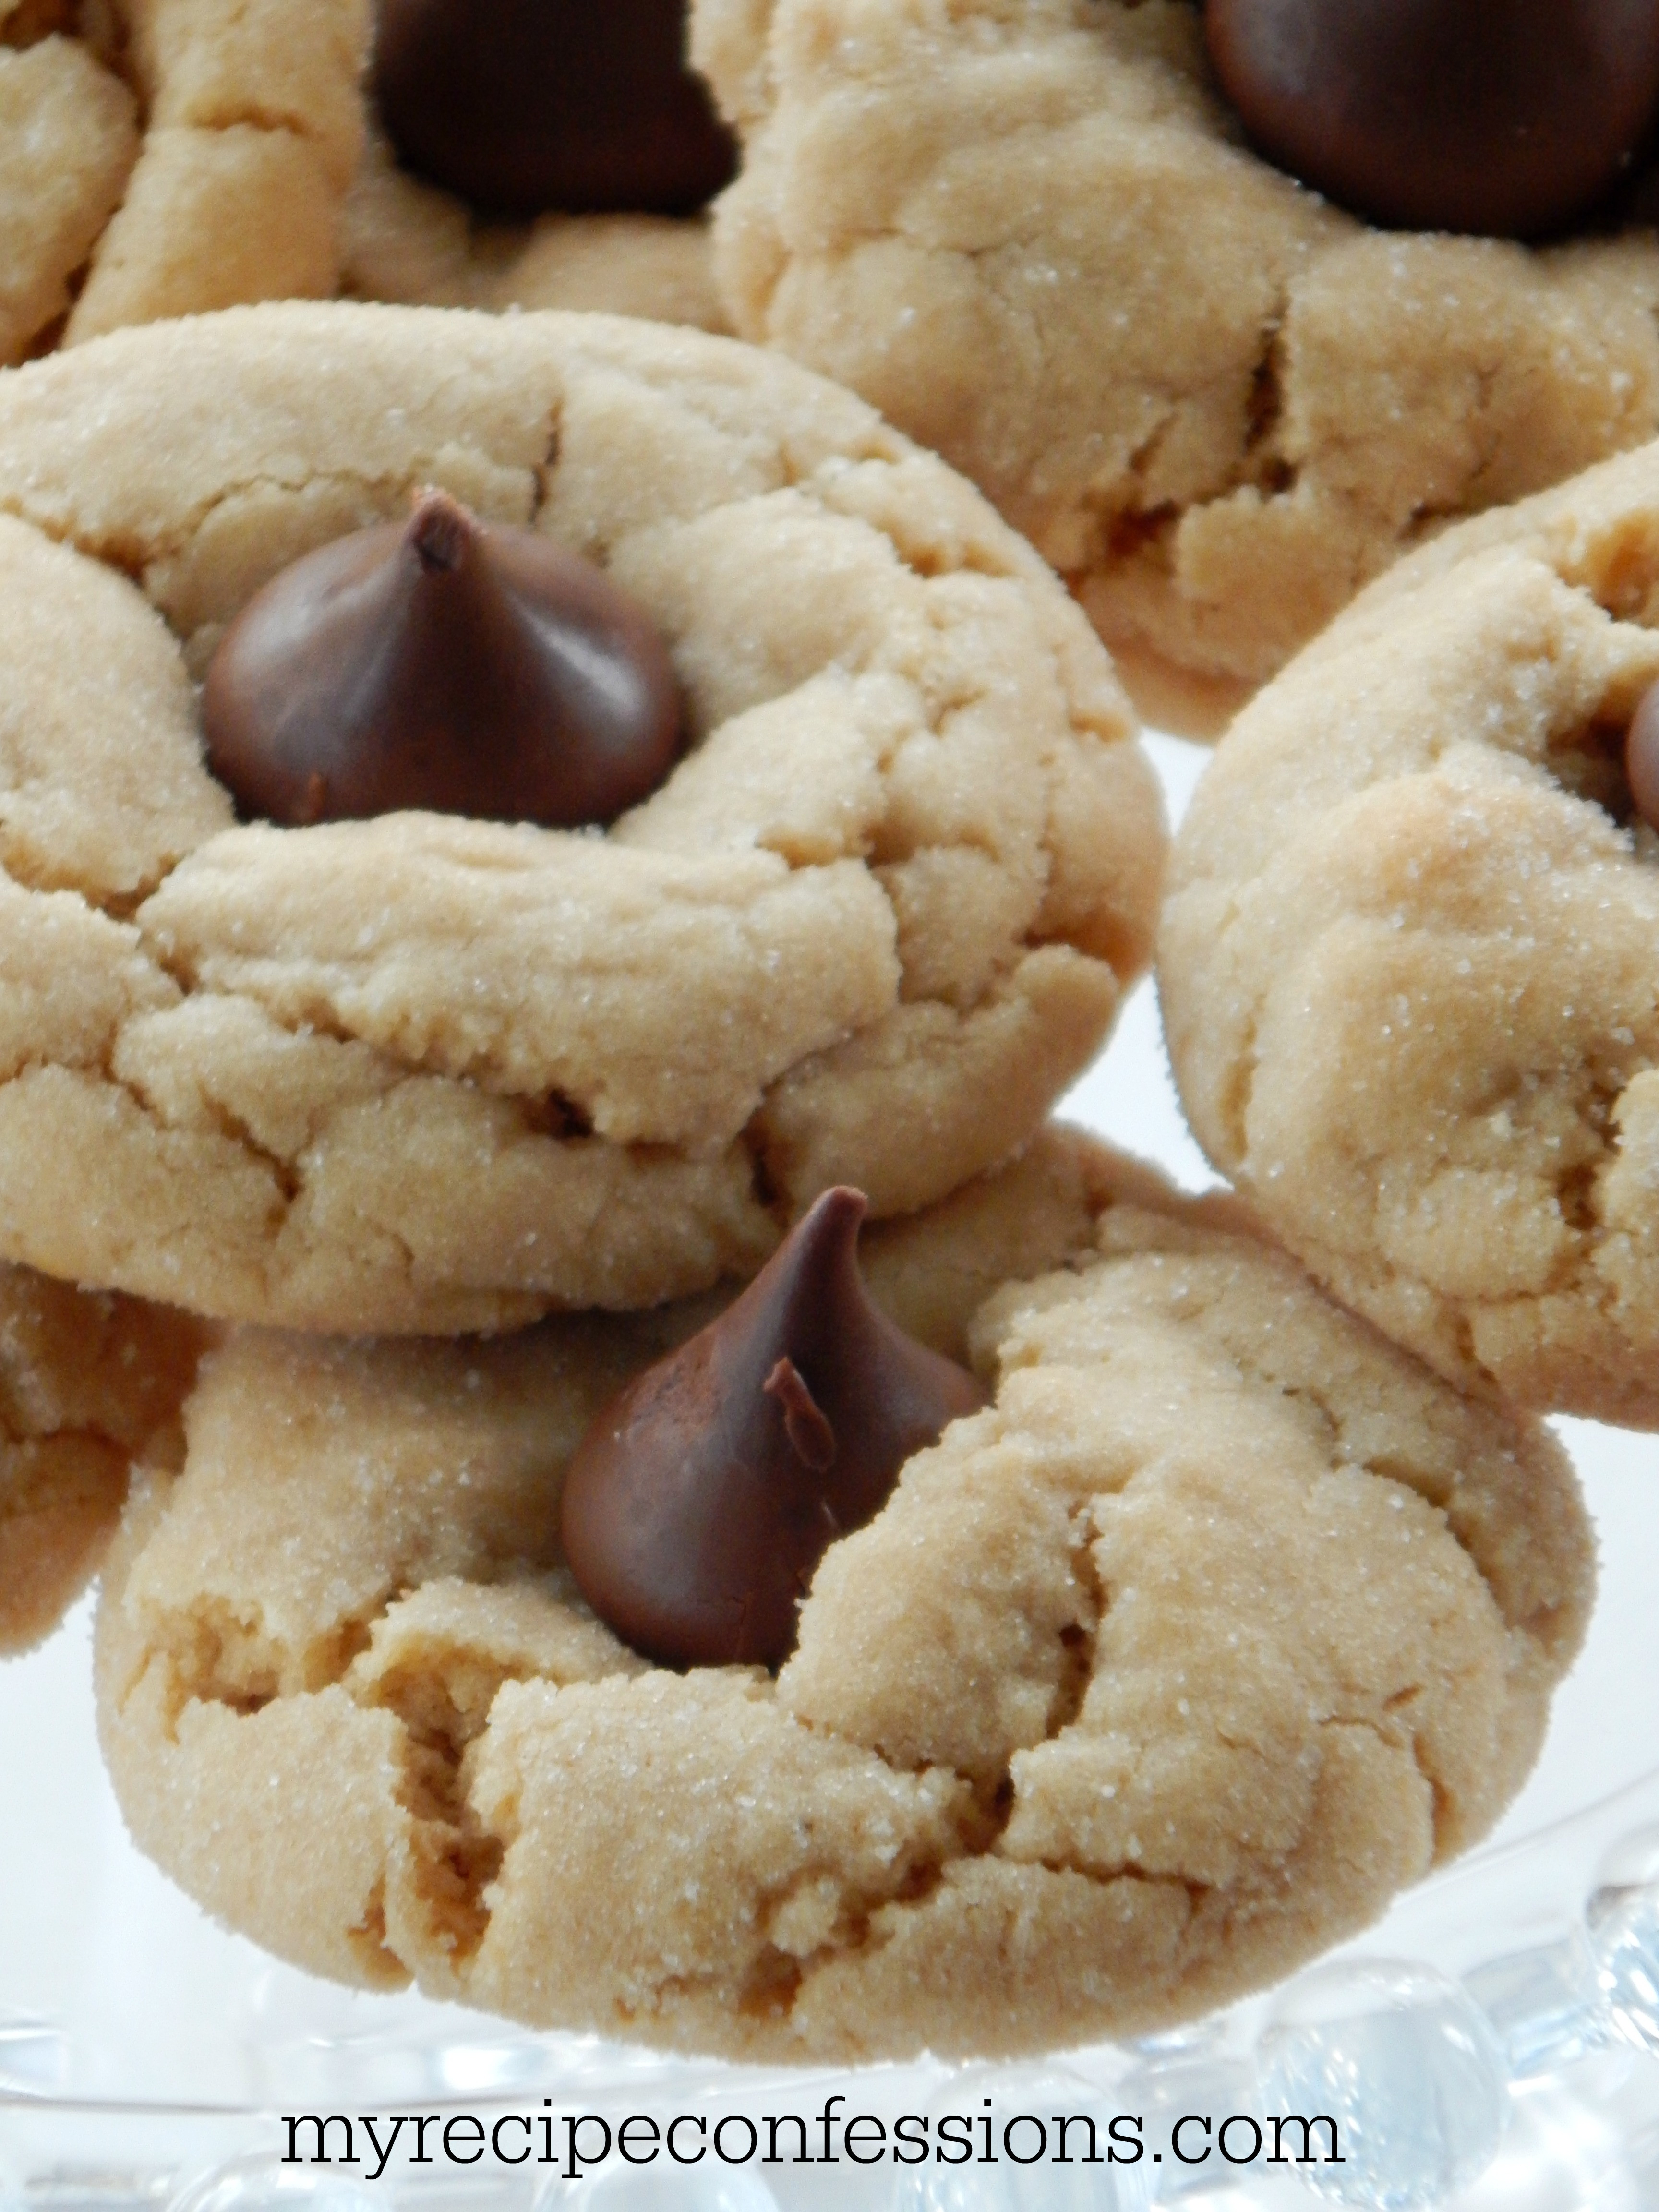 Peanut Butter Cookies With Hershey Kiss  myrecipeconfessions